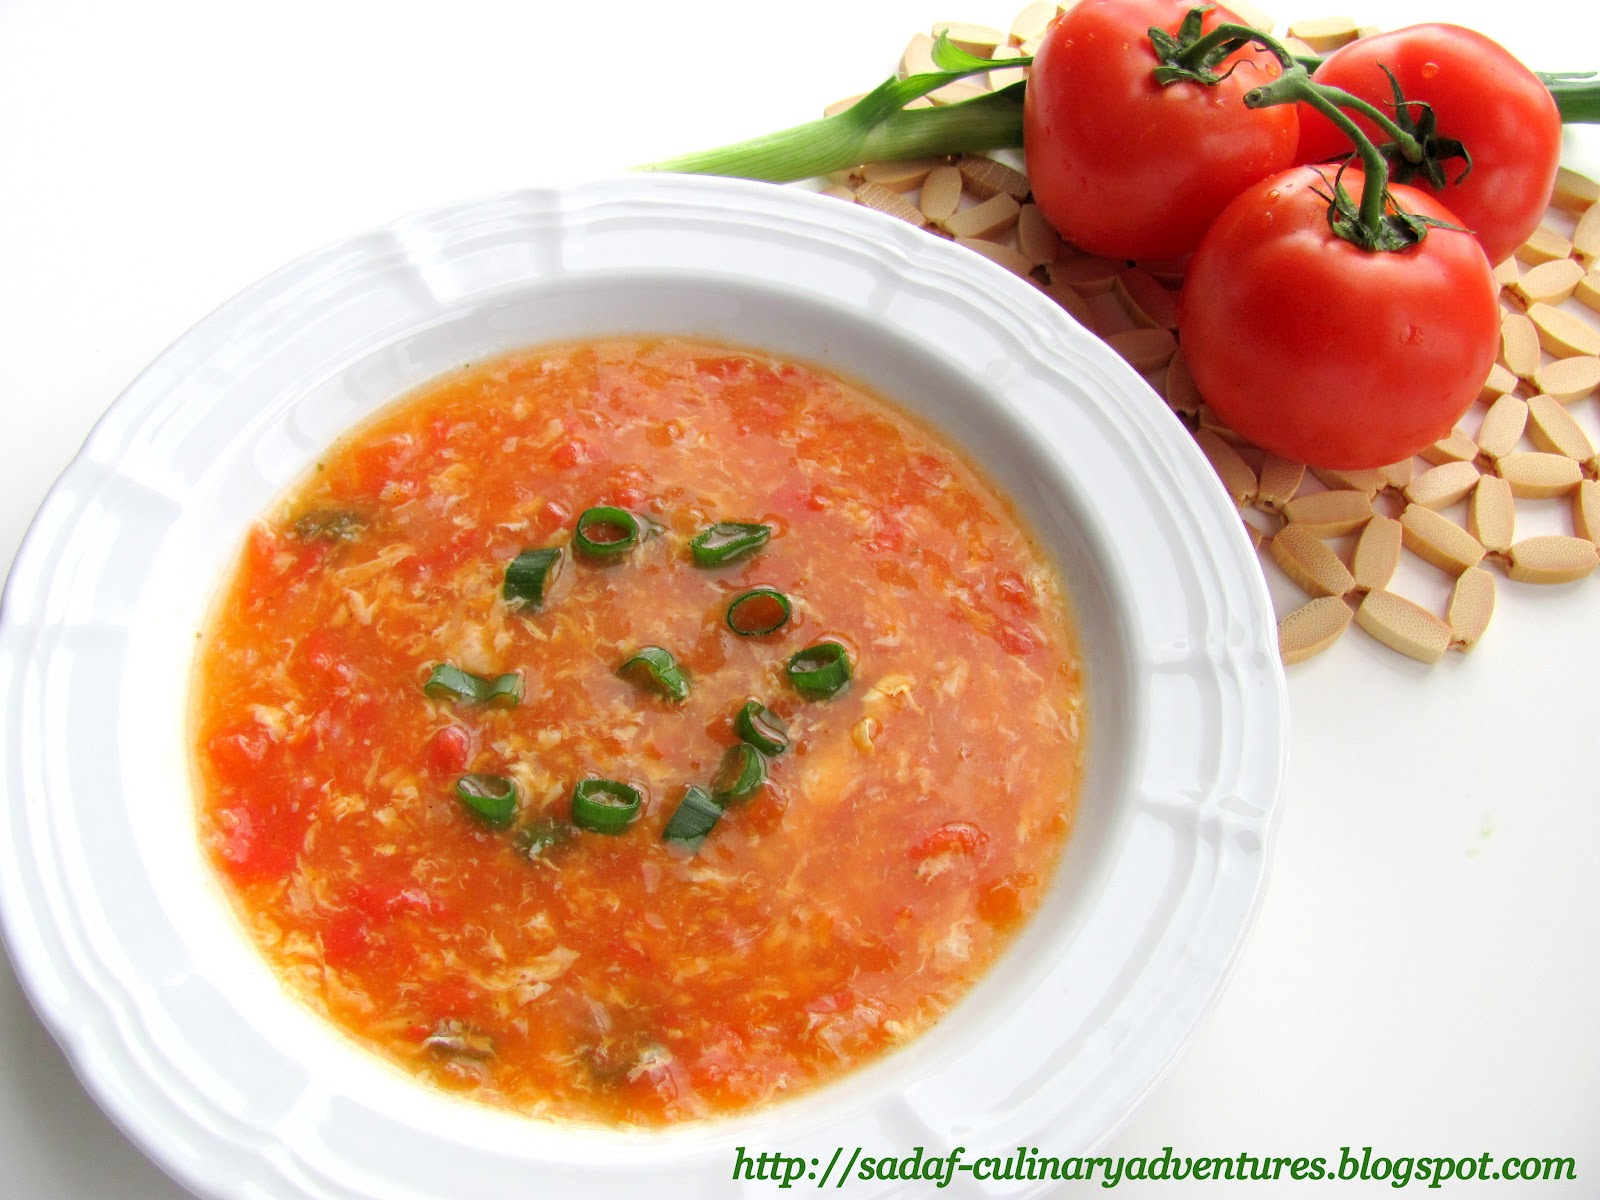 Tomato Egg Drop Soup - My Culinary Adventures